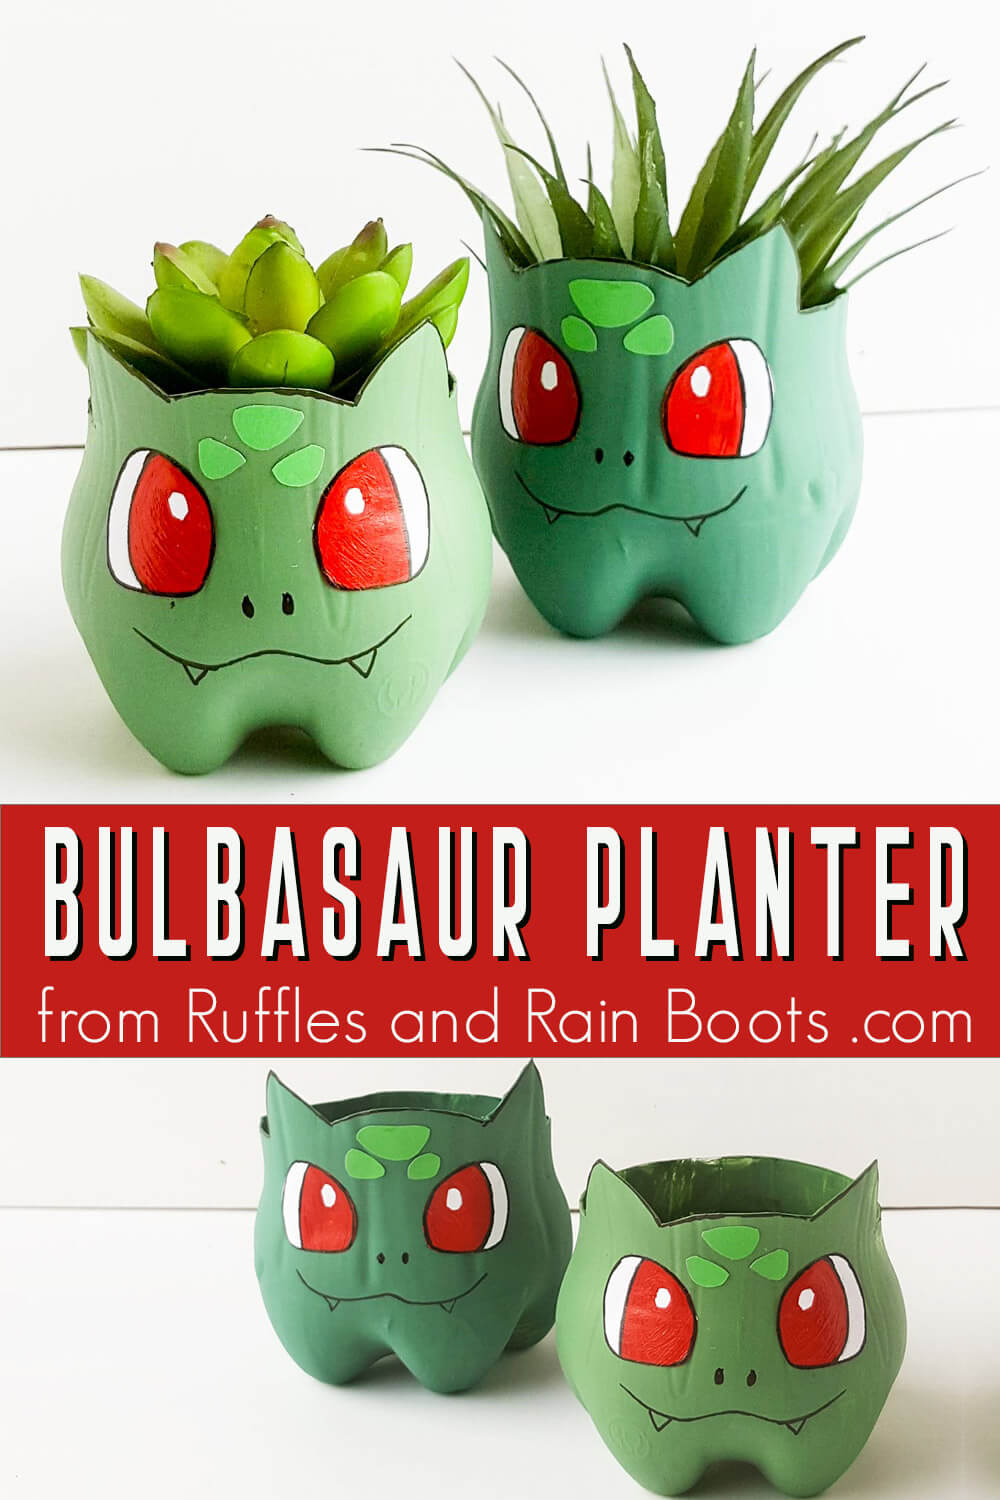 photo collage of Bulbasaur planter recycled pokemon craft with text which reads Bulbasaur planter